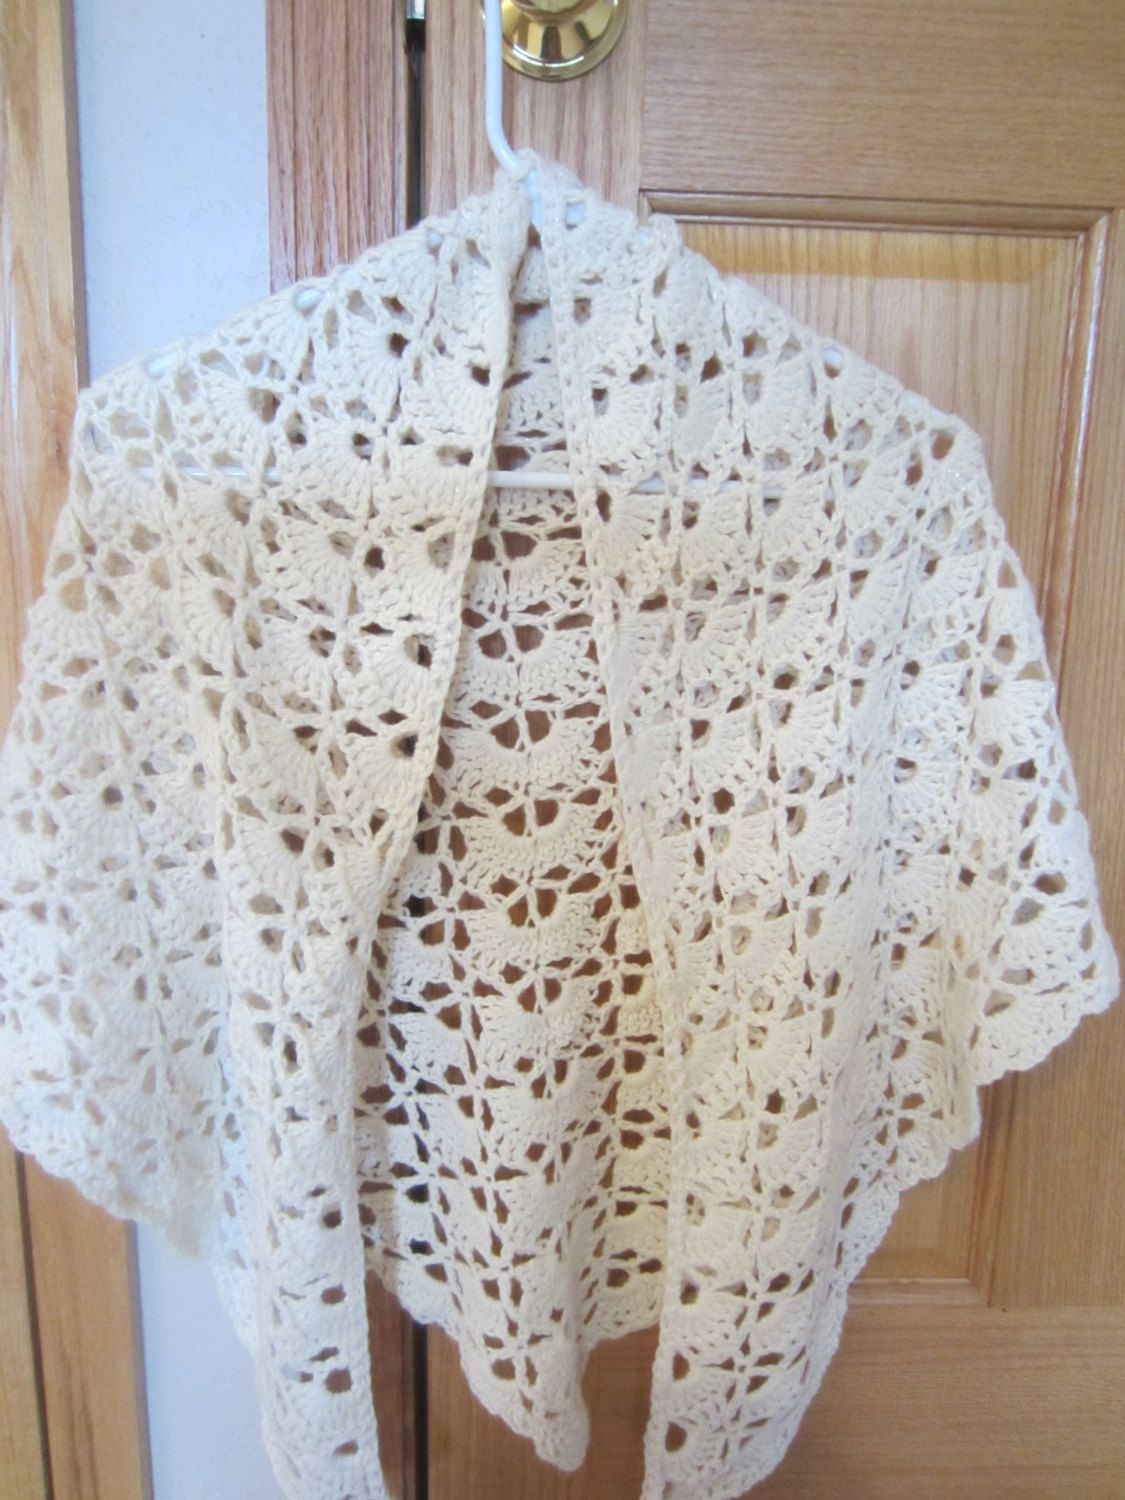 Beautiful White Triangle Shawl  With Touch Of Sparkle  Delicate Elegant  Lace Summer  Wrap Capalet  Stole by MonkeyCatBoutique on Etsy https://www.etsy.com/listing/187982546/beautiful-white-triangle-shawl-with